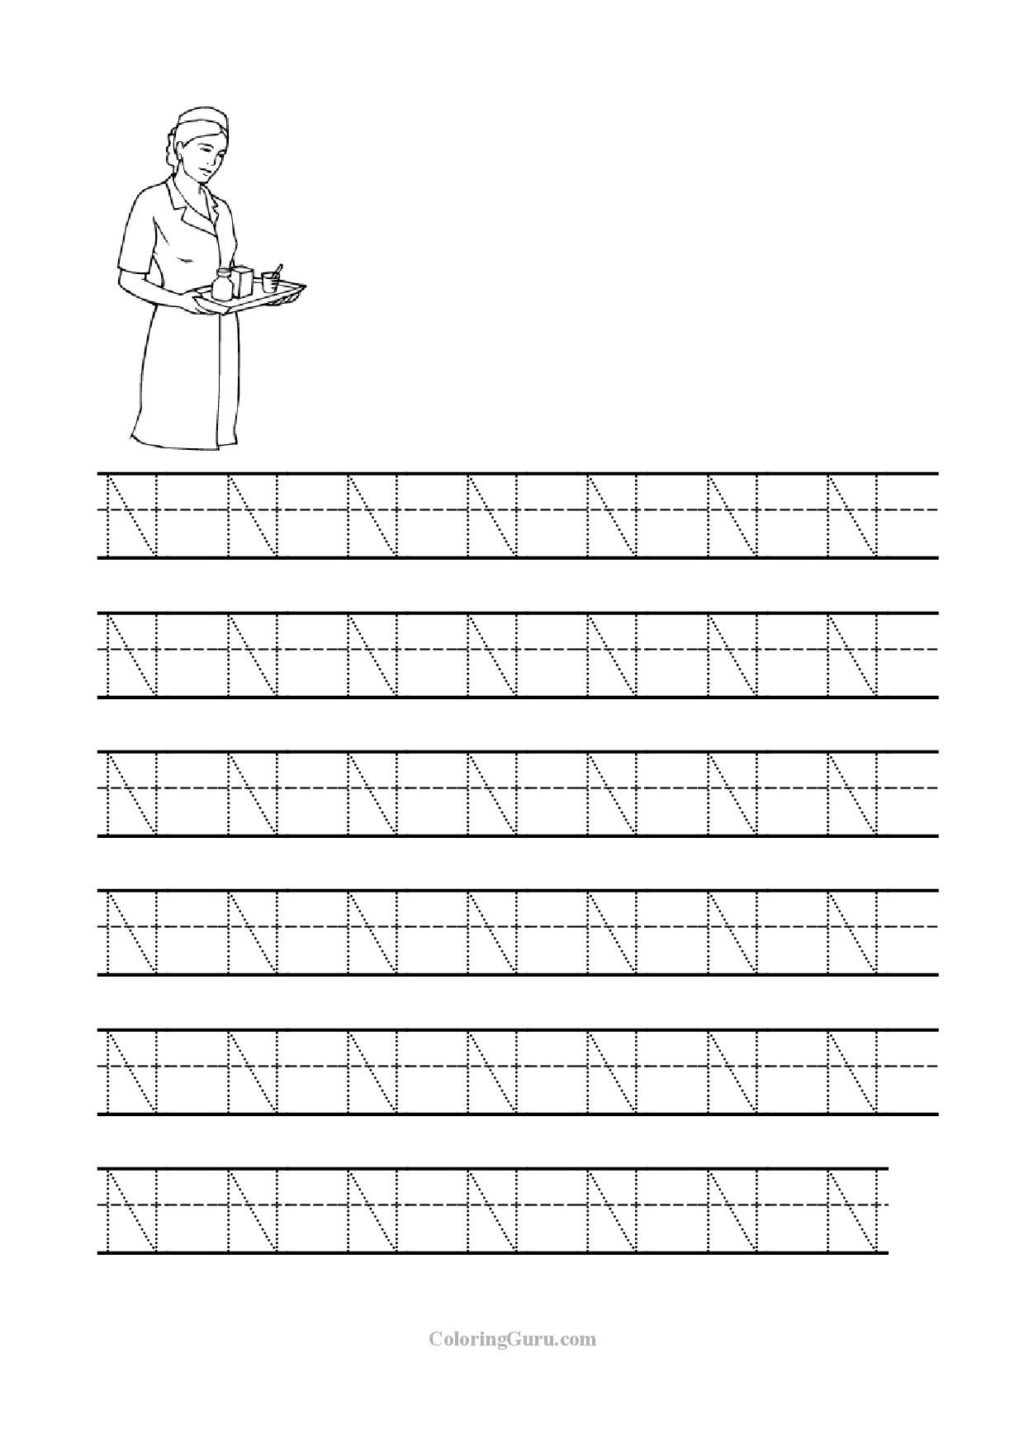 Worksheet ~ Worksheet Lettering Printables Free Printable within Letter V Tracing Pages